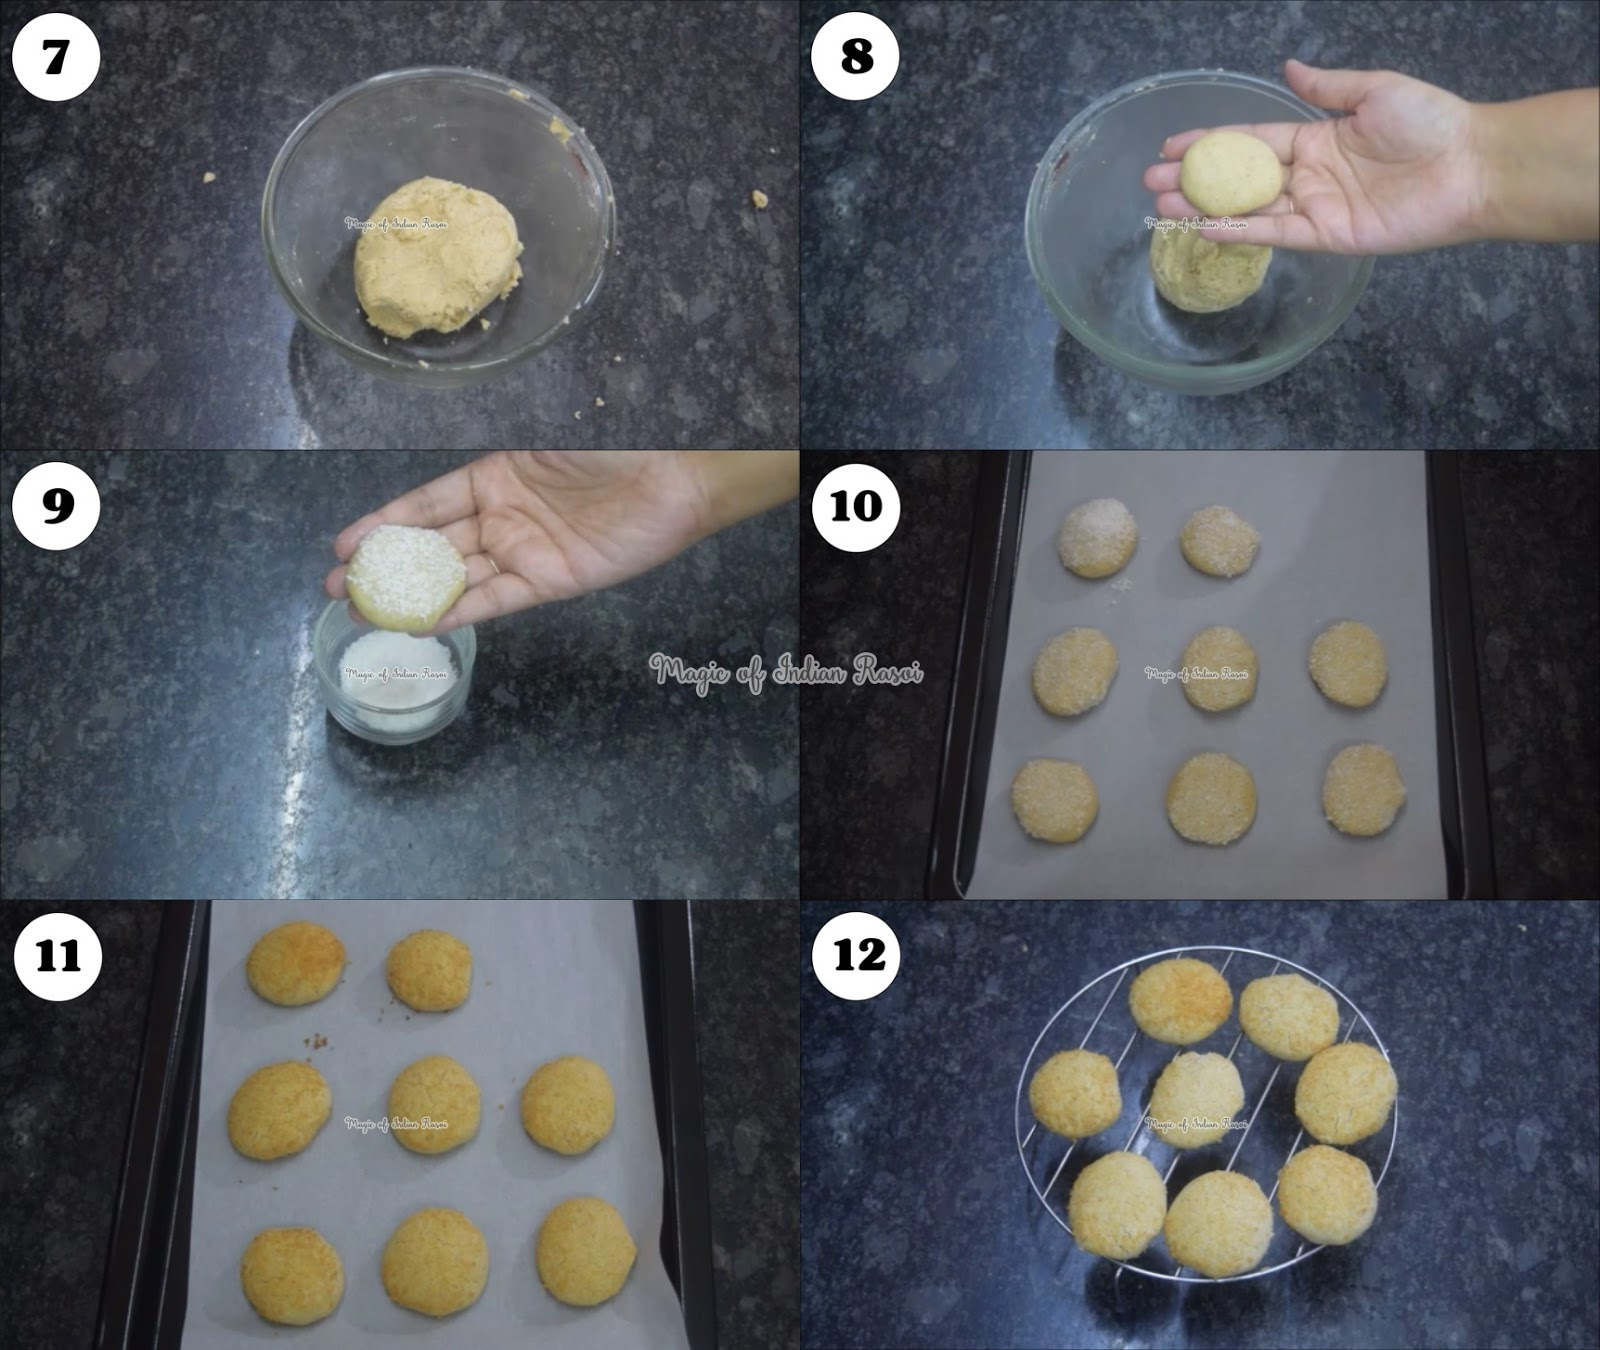 Almond Semolina Cookies - Wheat Flour & Badam Nankhatai Recipe - गेहू, रवा और बादाम की नानखटाई - Priya R - Magic of Indian Rasoi